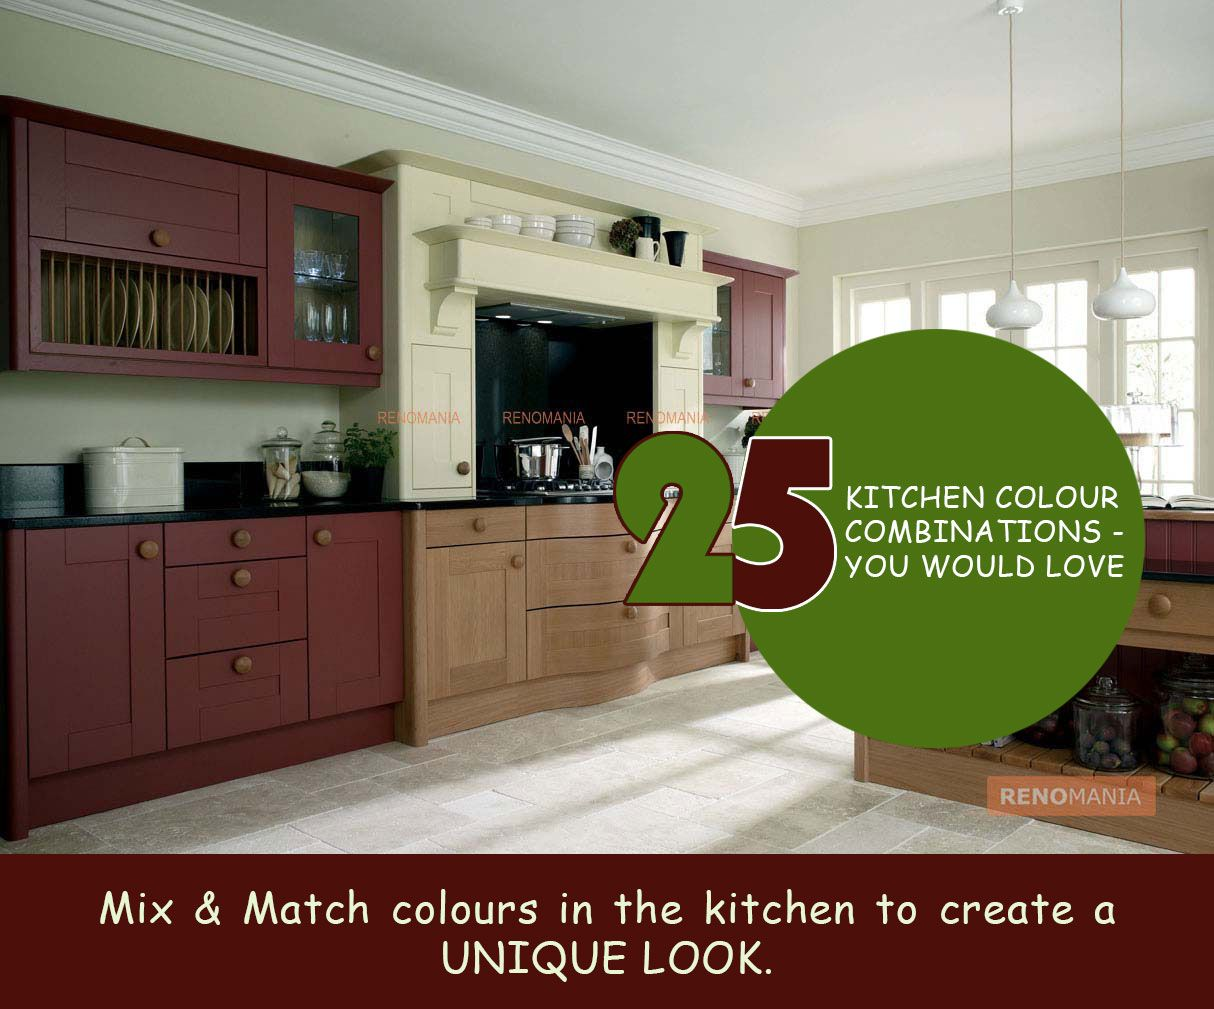 Mix And Match Your Heart Of The Home Kitchen With Some Interesting Colour Combination Ideas